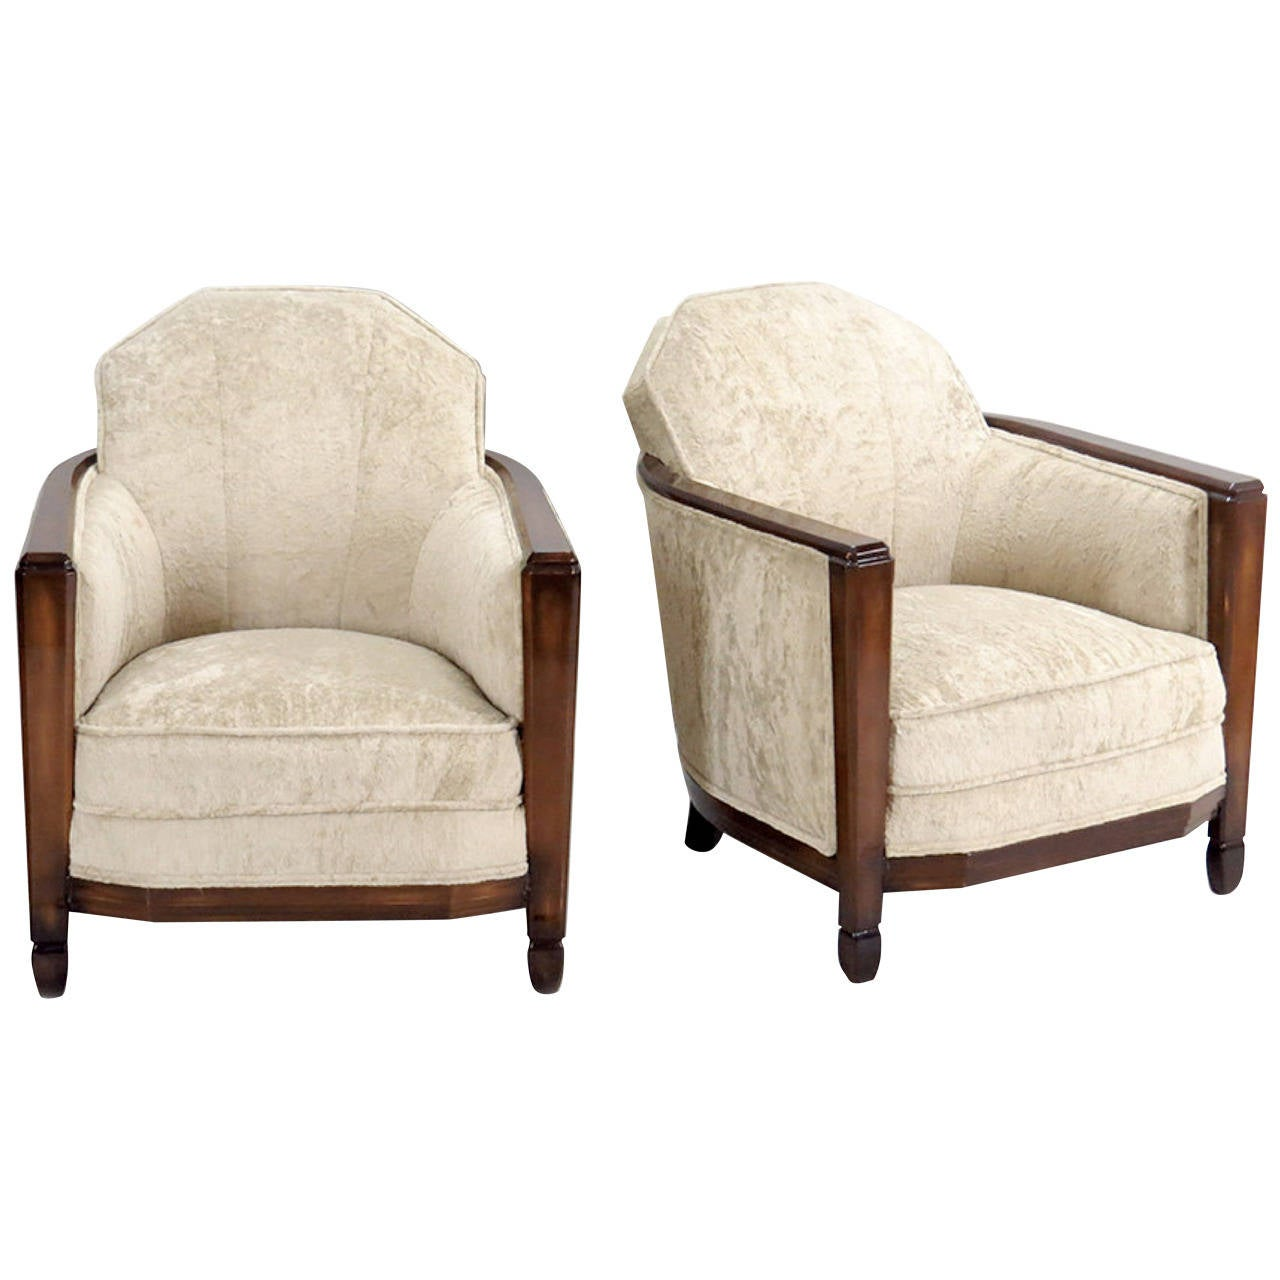 Pair of French Club Chairs Attributed to Paul Follot